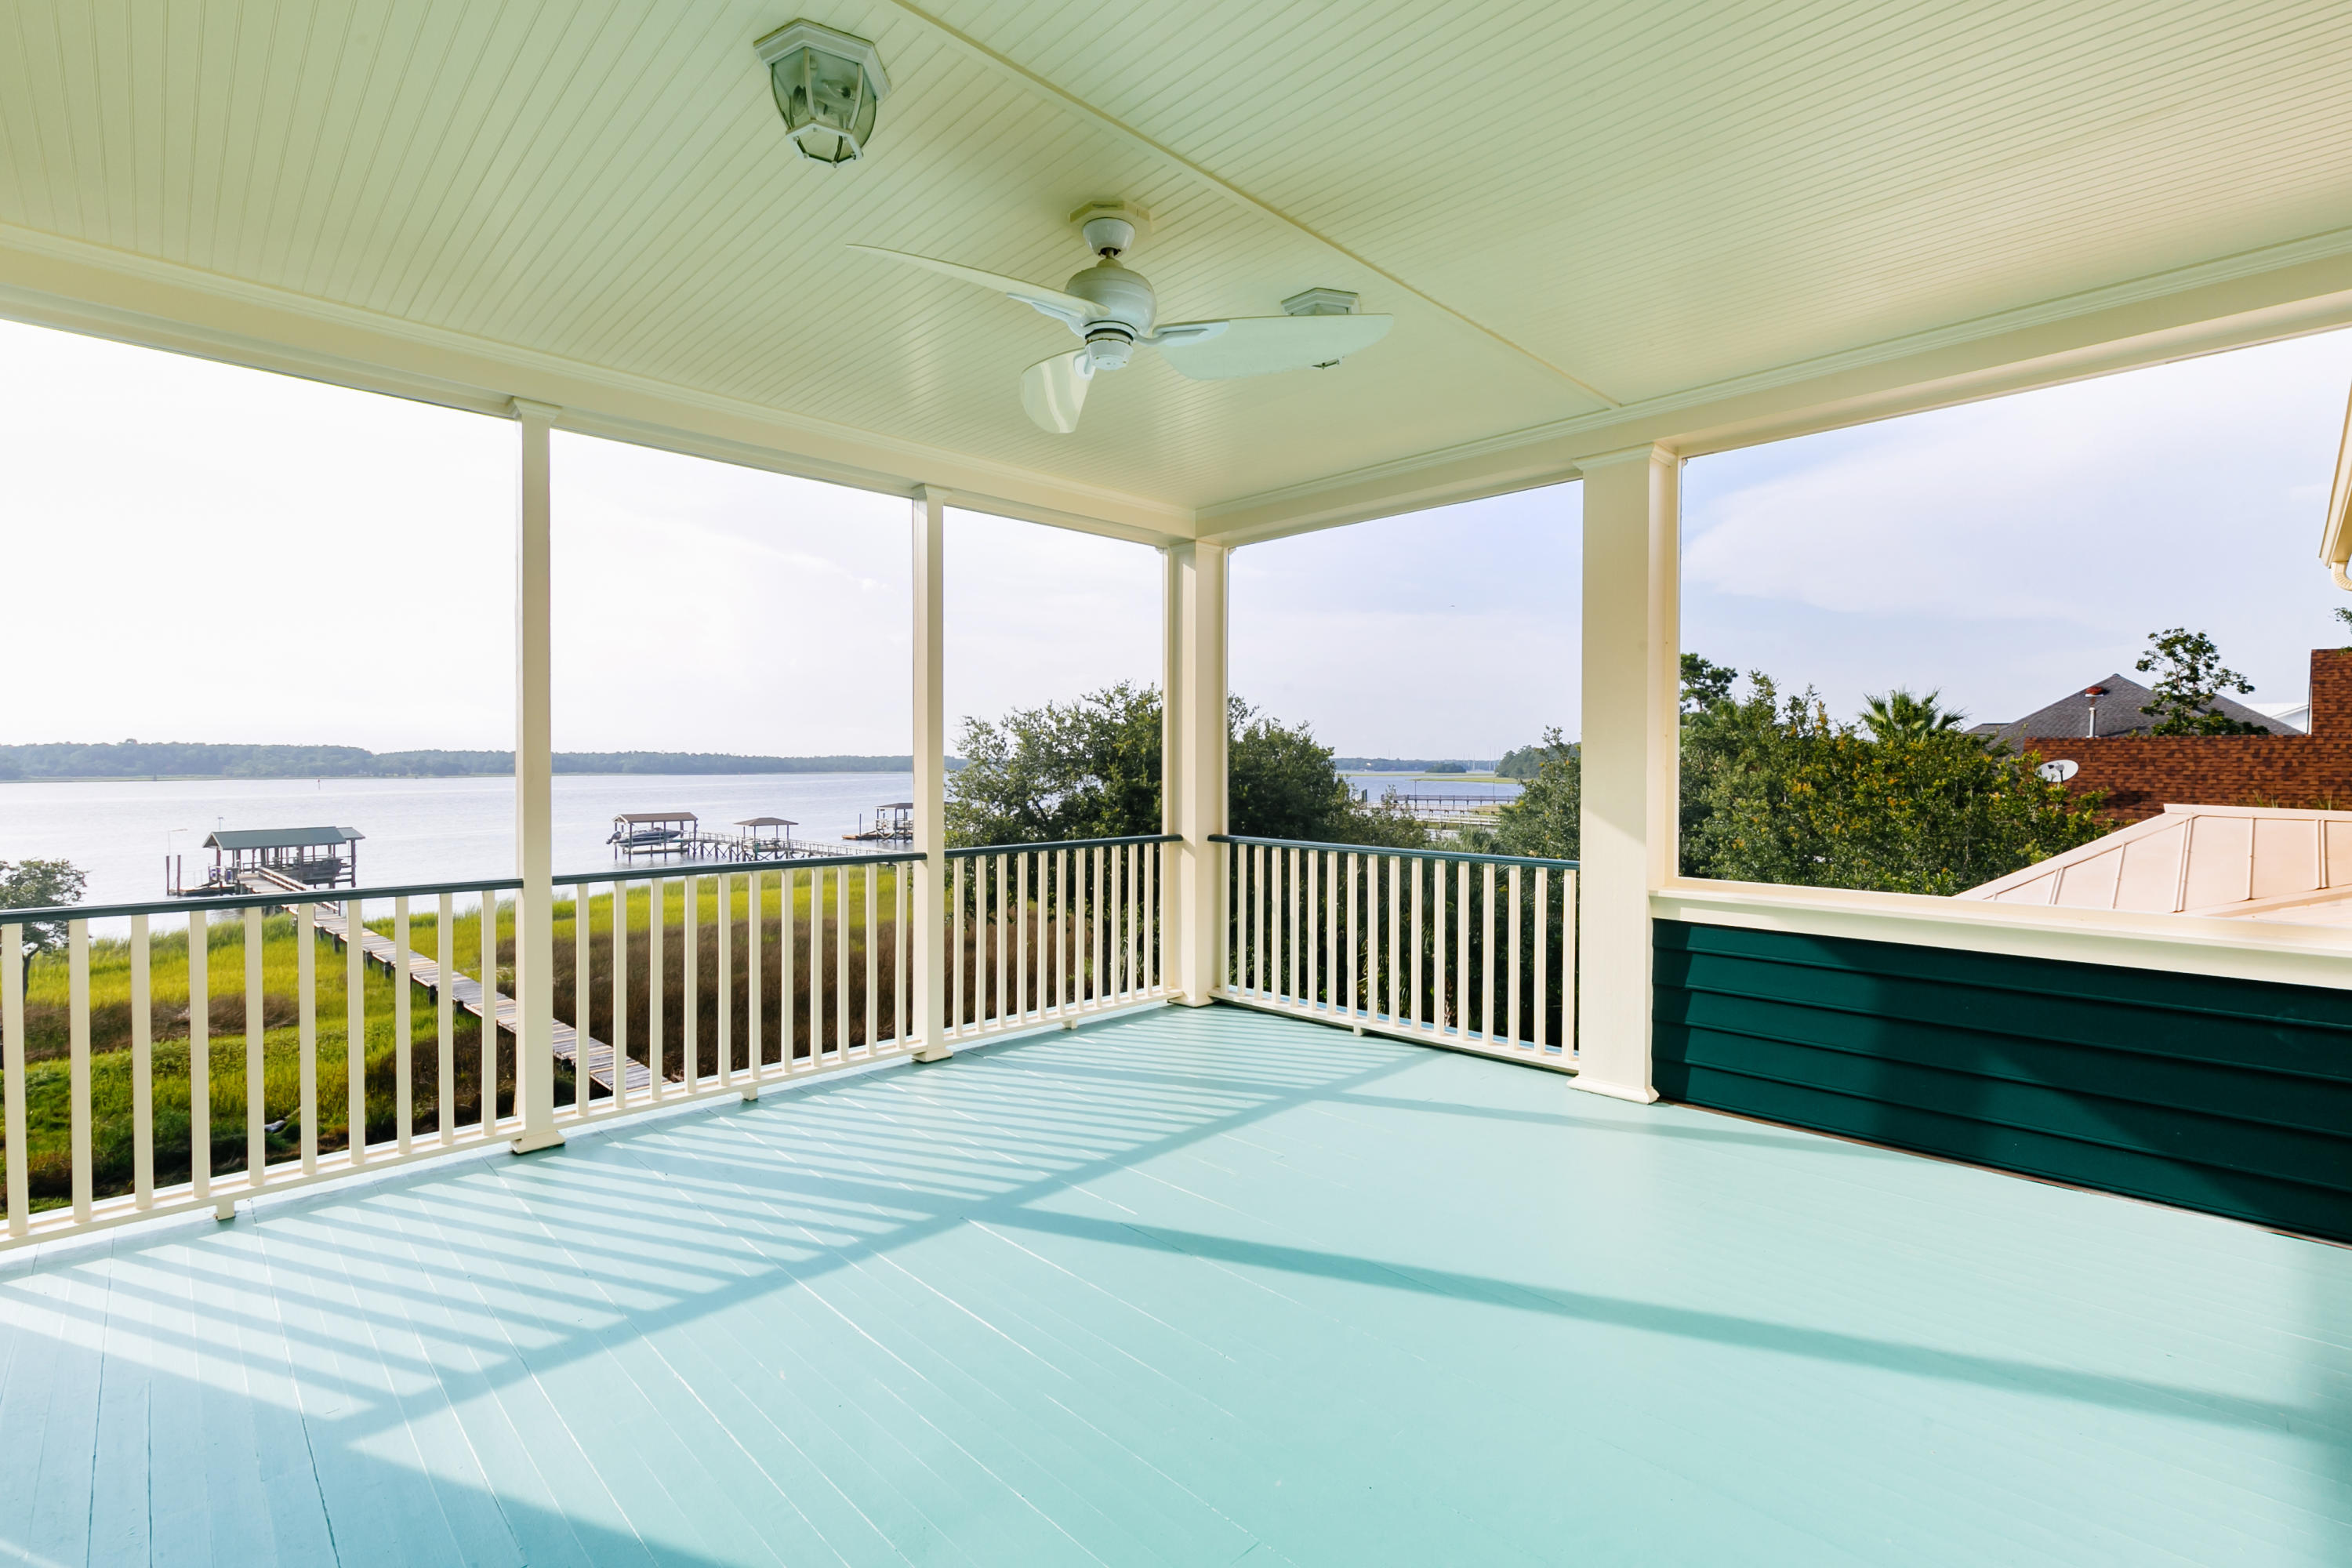 Rivertowne On The Wando Homes For Sale - 2212 Hartfords Bluff, Mount Pleasant, SC - 31